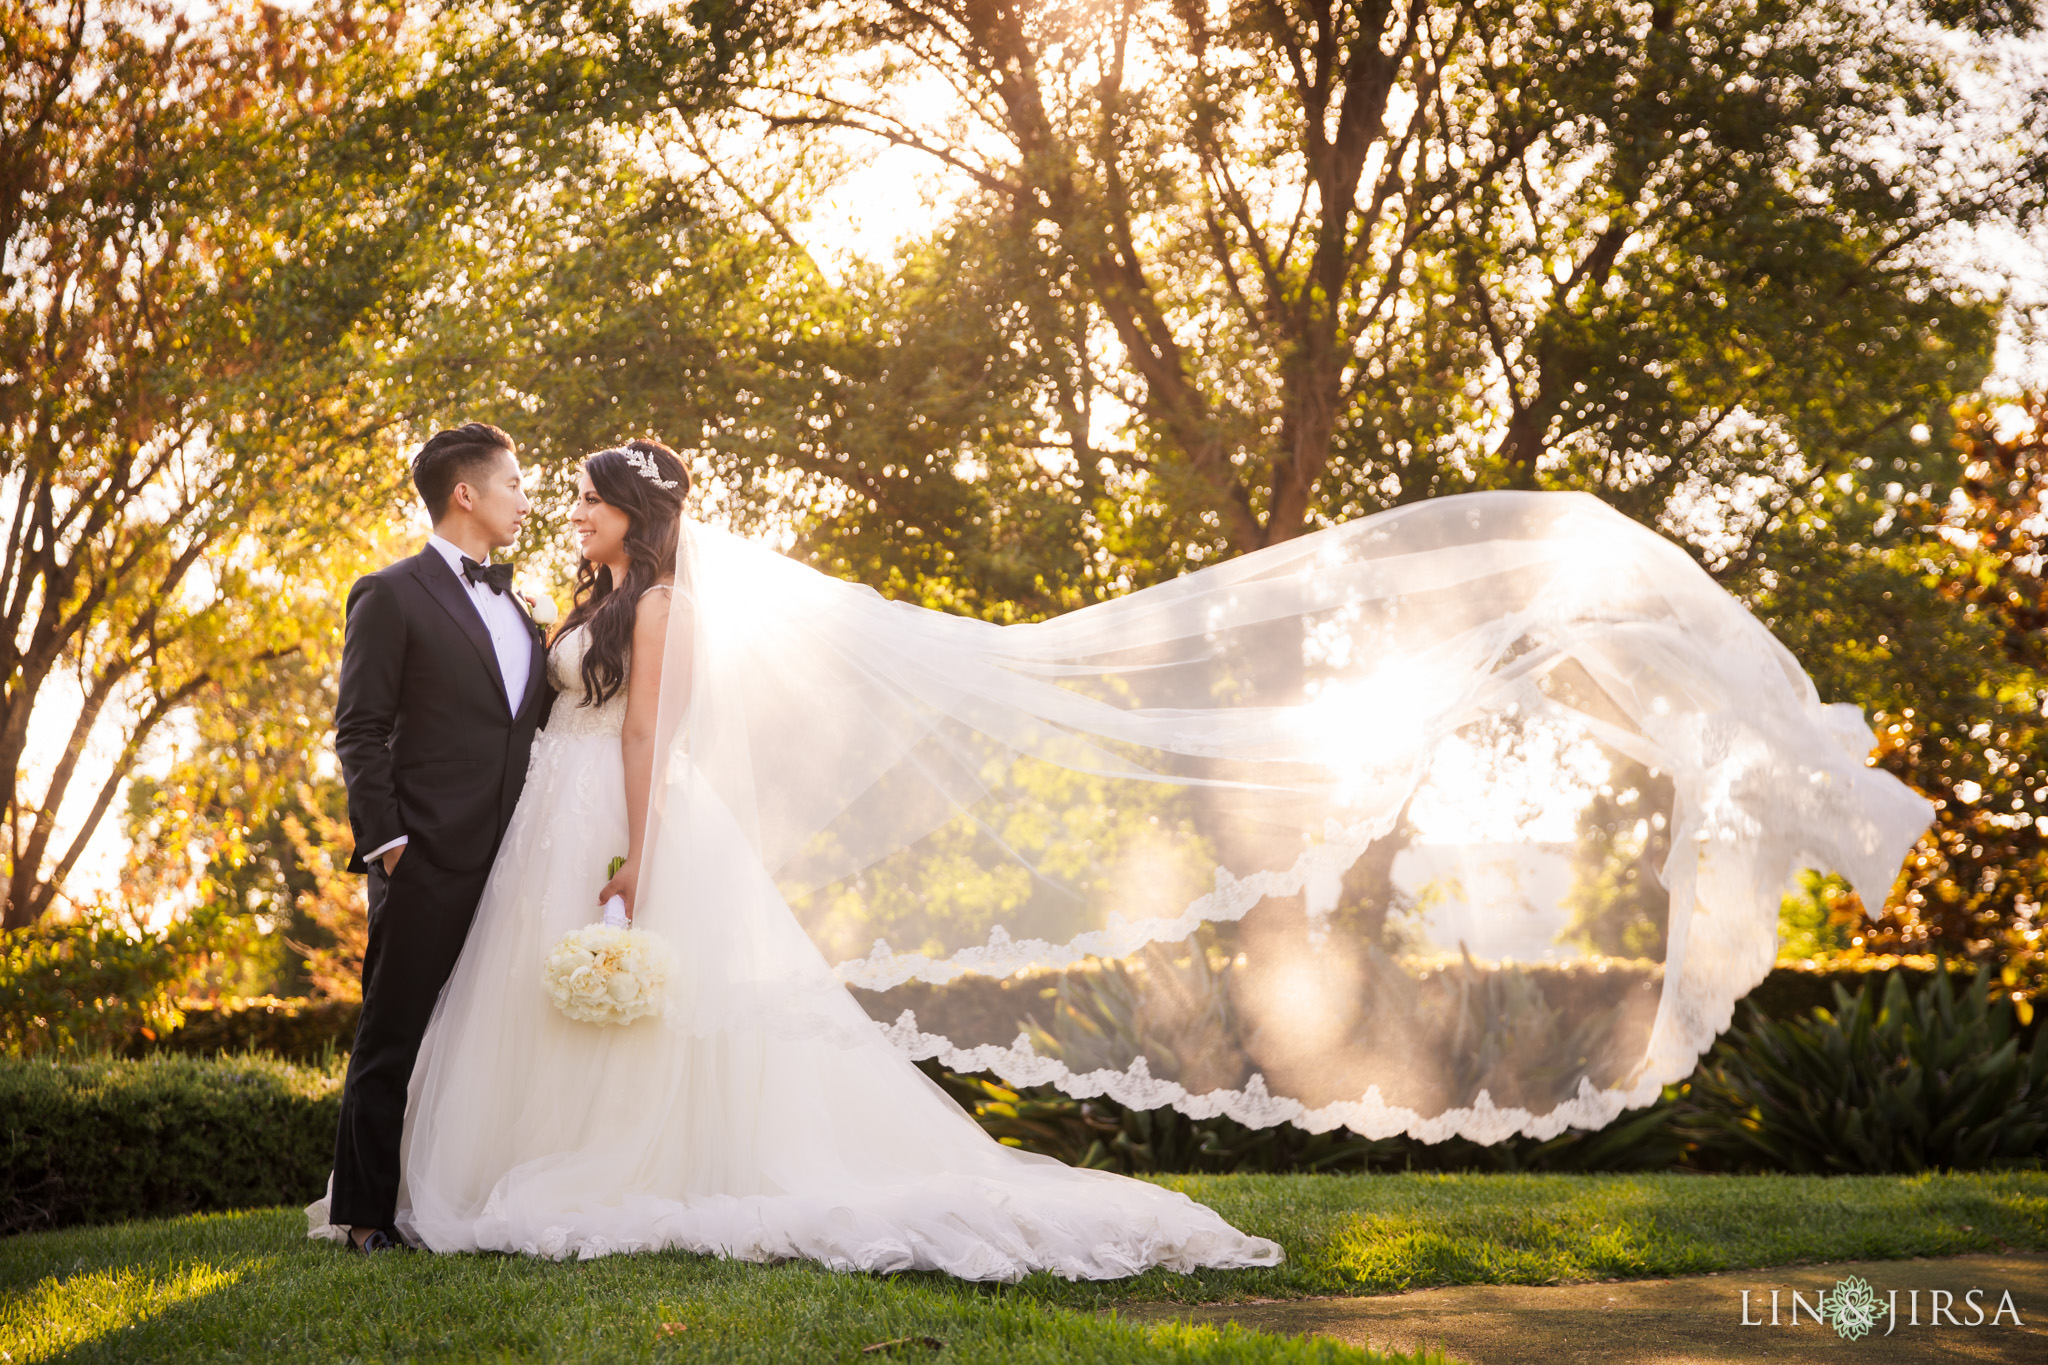 19 four seasons westlake village wedding photography